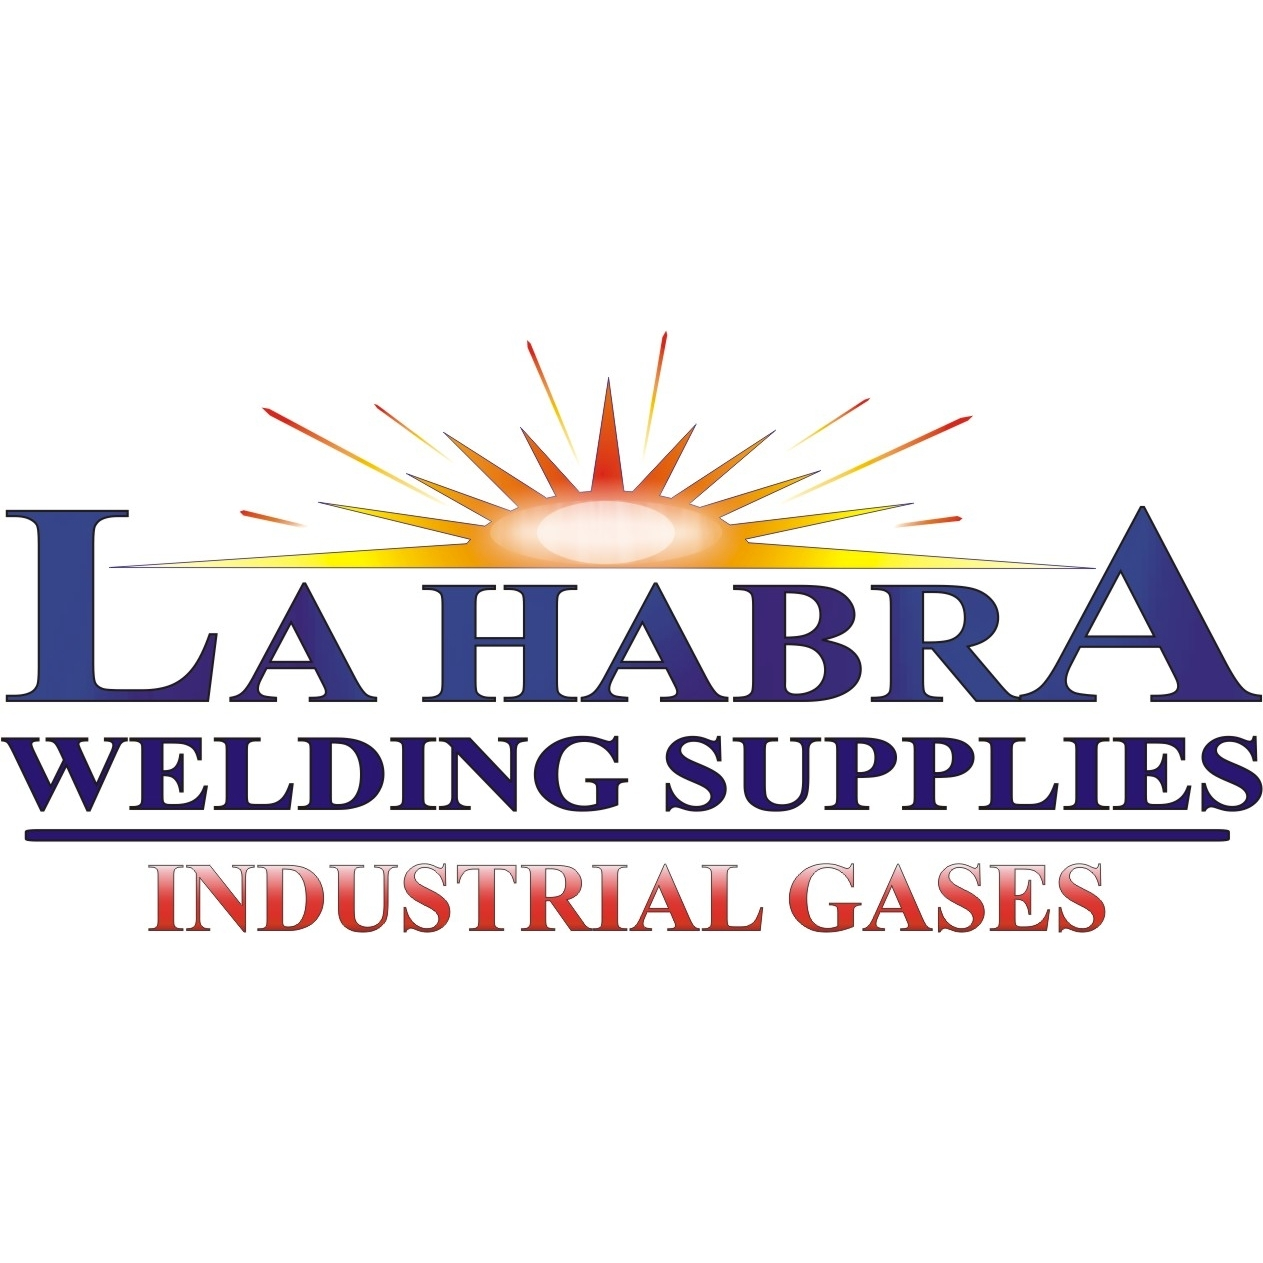 La Habra Welding Supplies